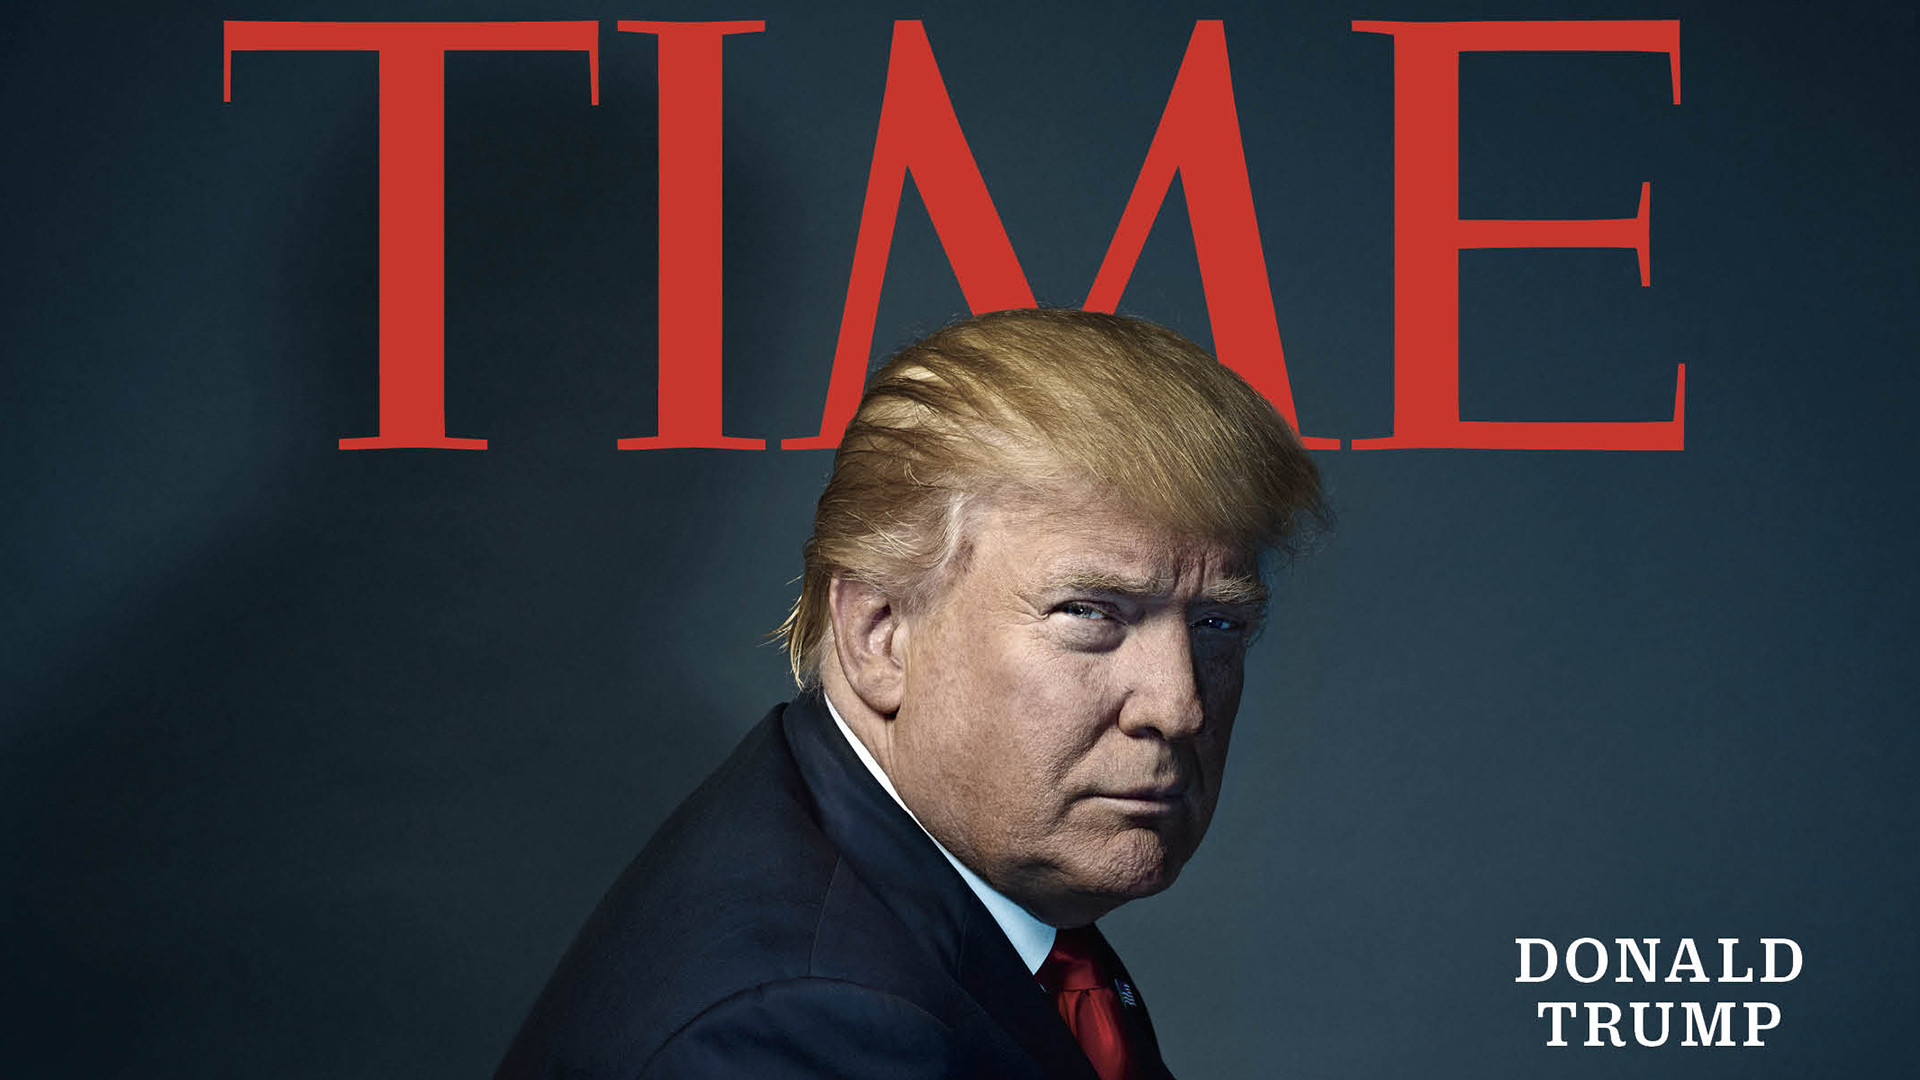 President-elect Donald Trump is TIME Person of the Year for 2016 – TODAY.com